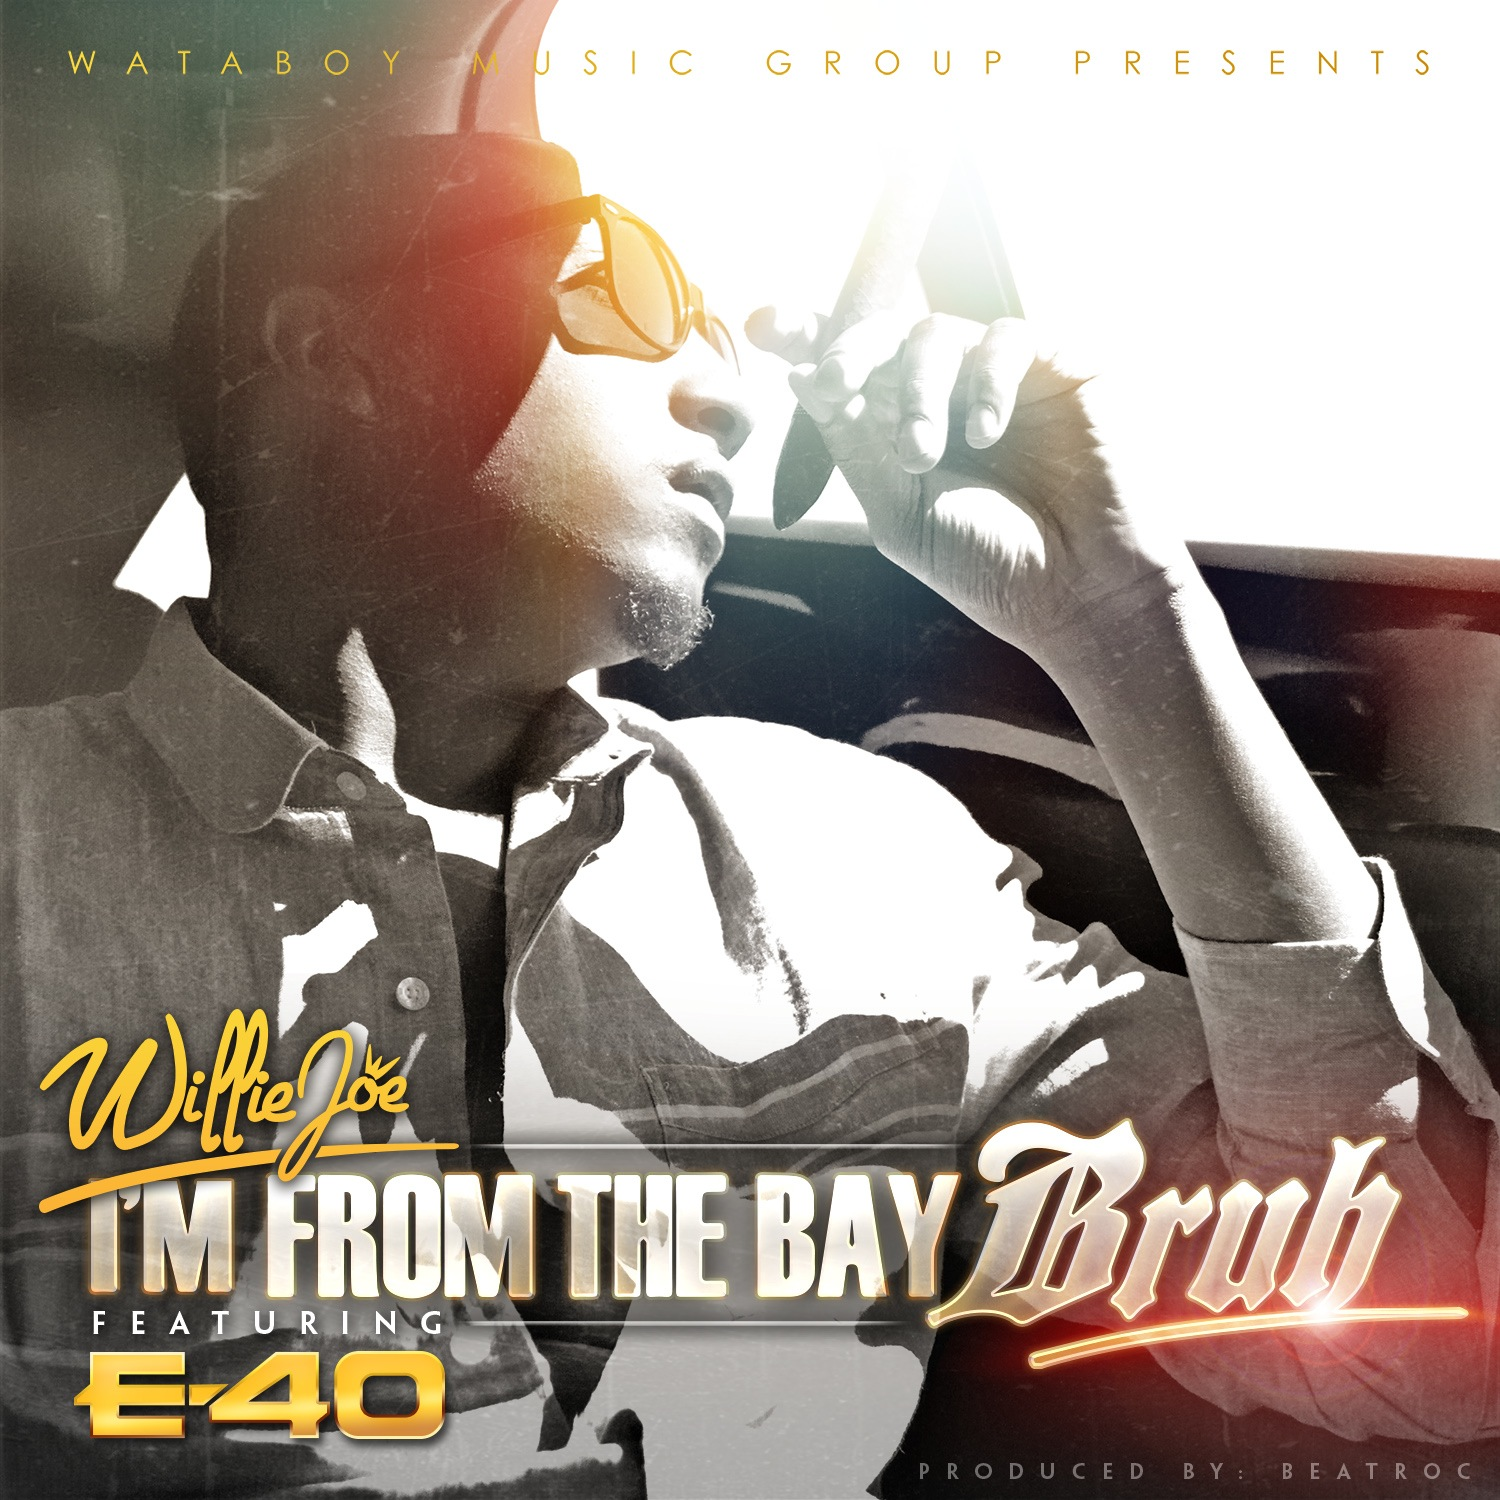 Willie Joe ft. E-40 - I'm From The Bay Bruh [Thizzler.com Exclusive]